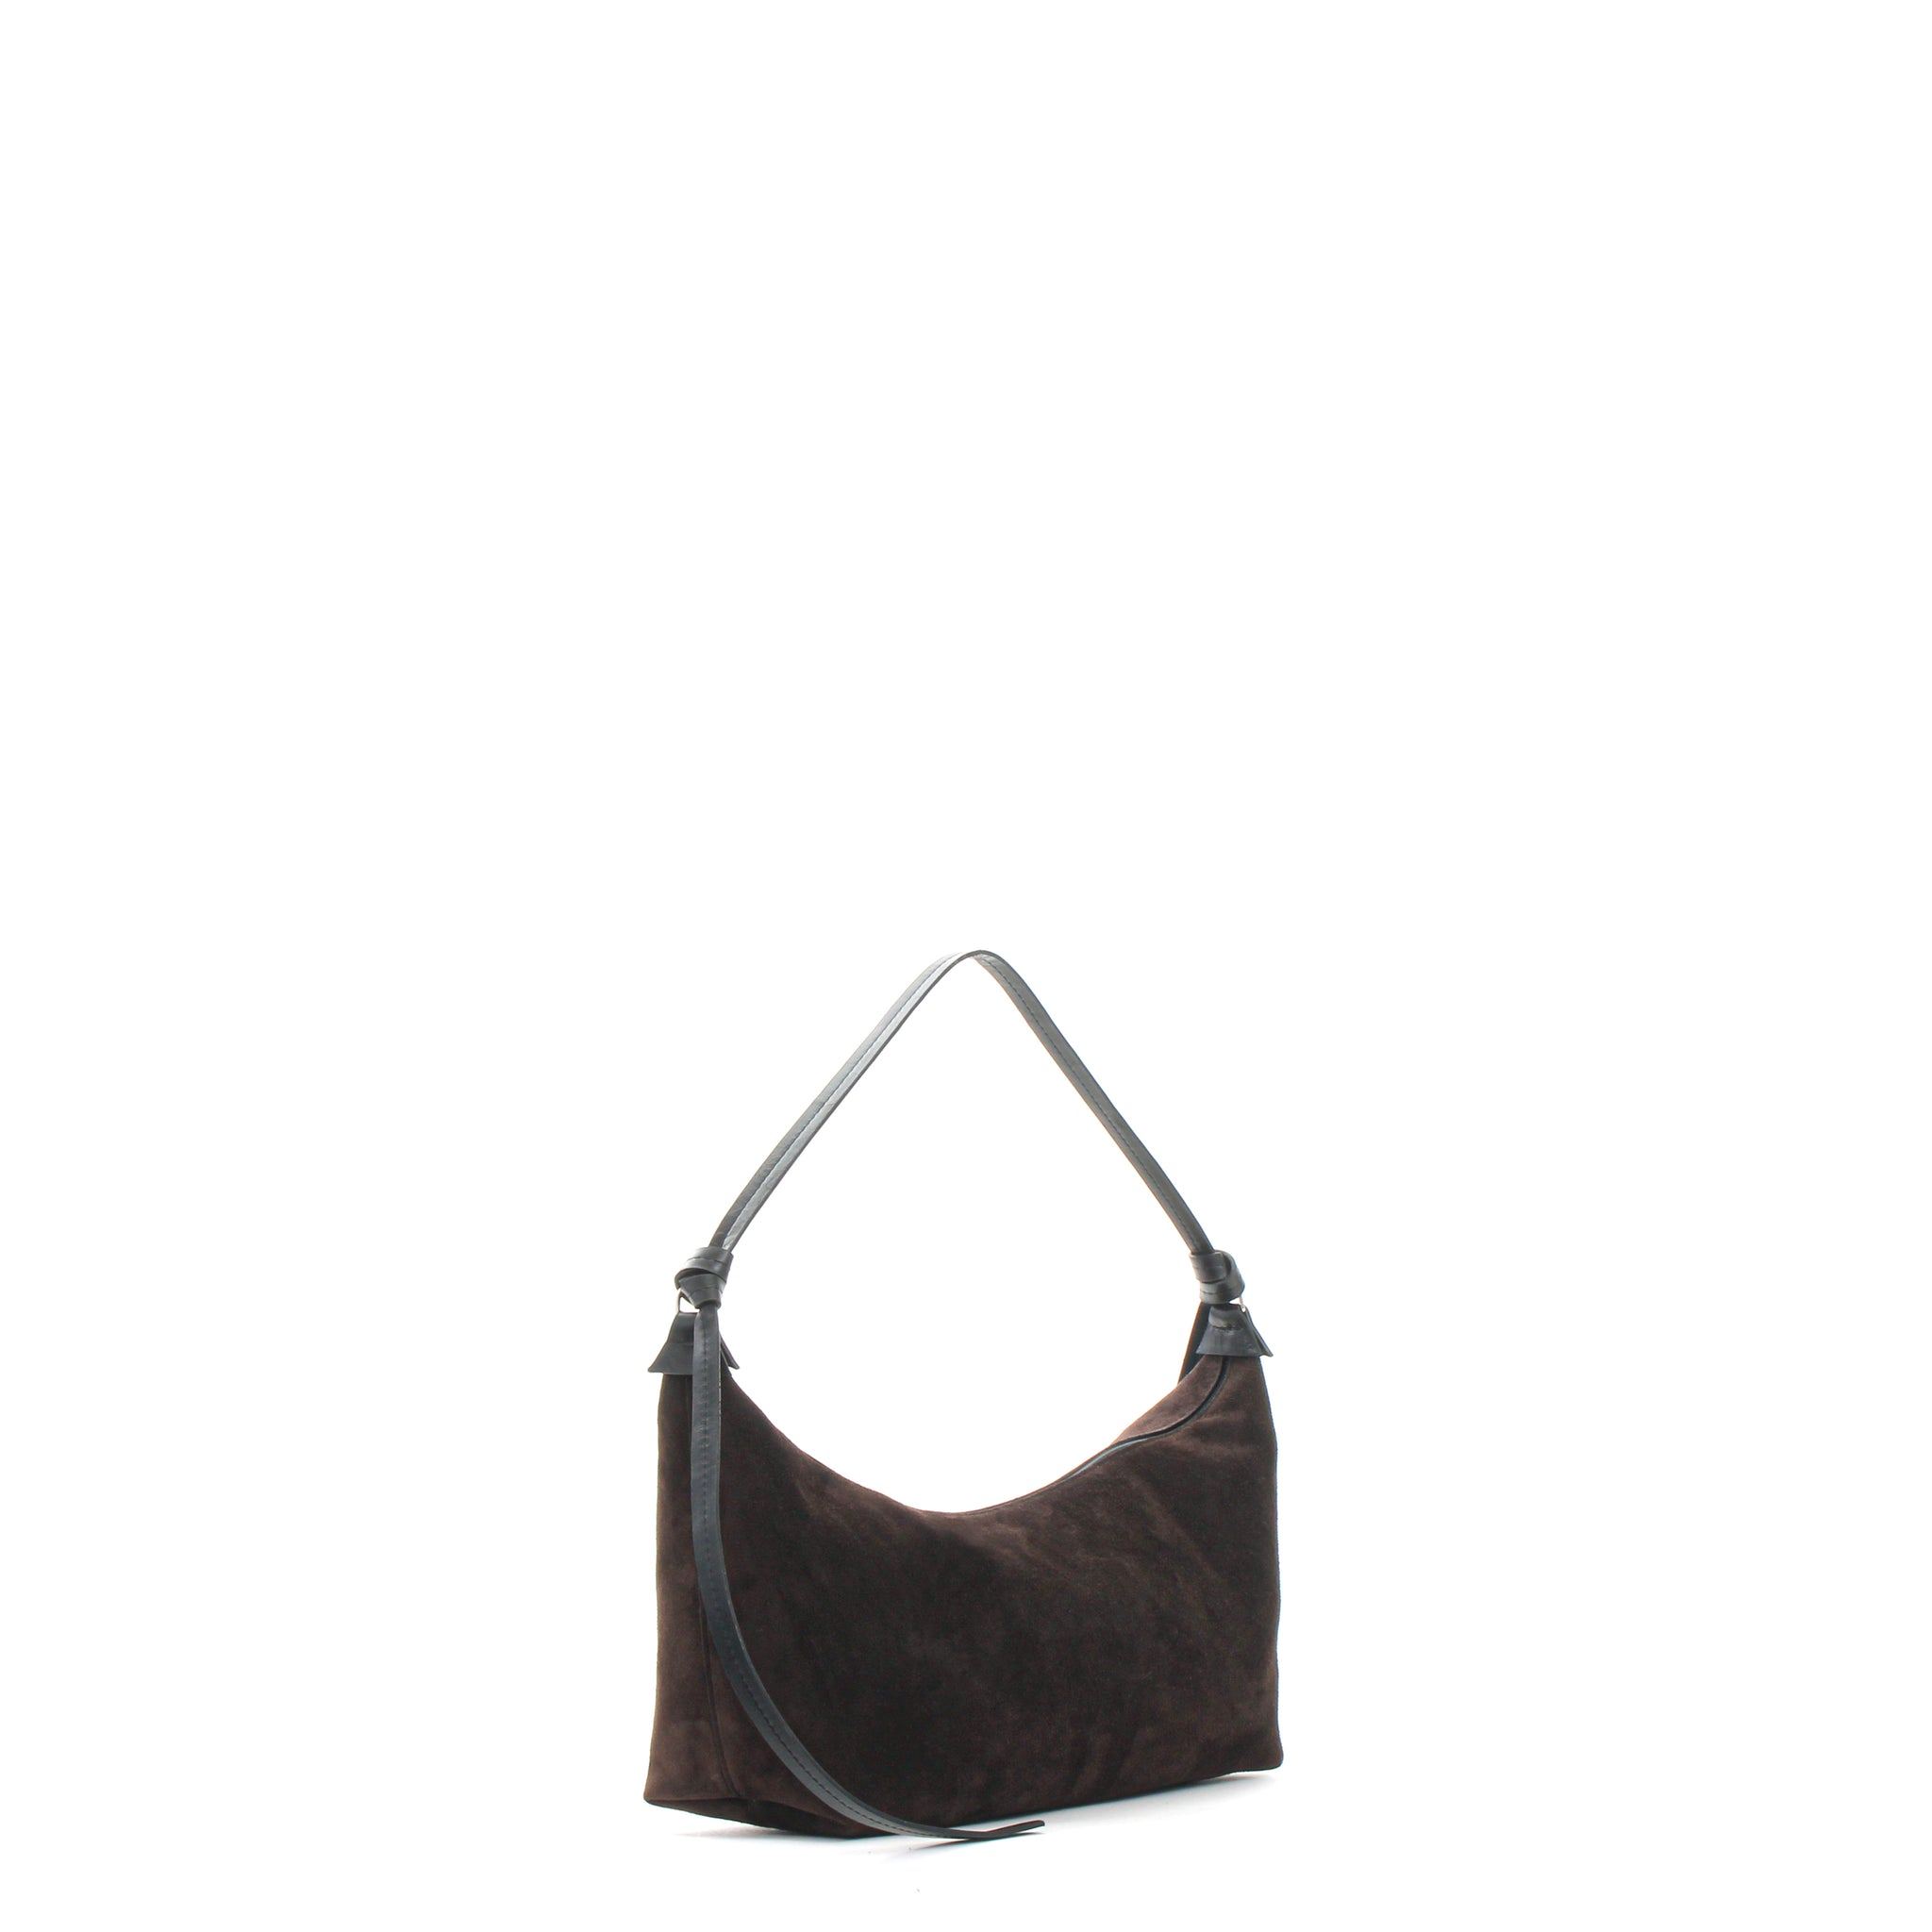 SLING SABLE SUEDE